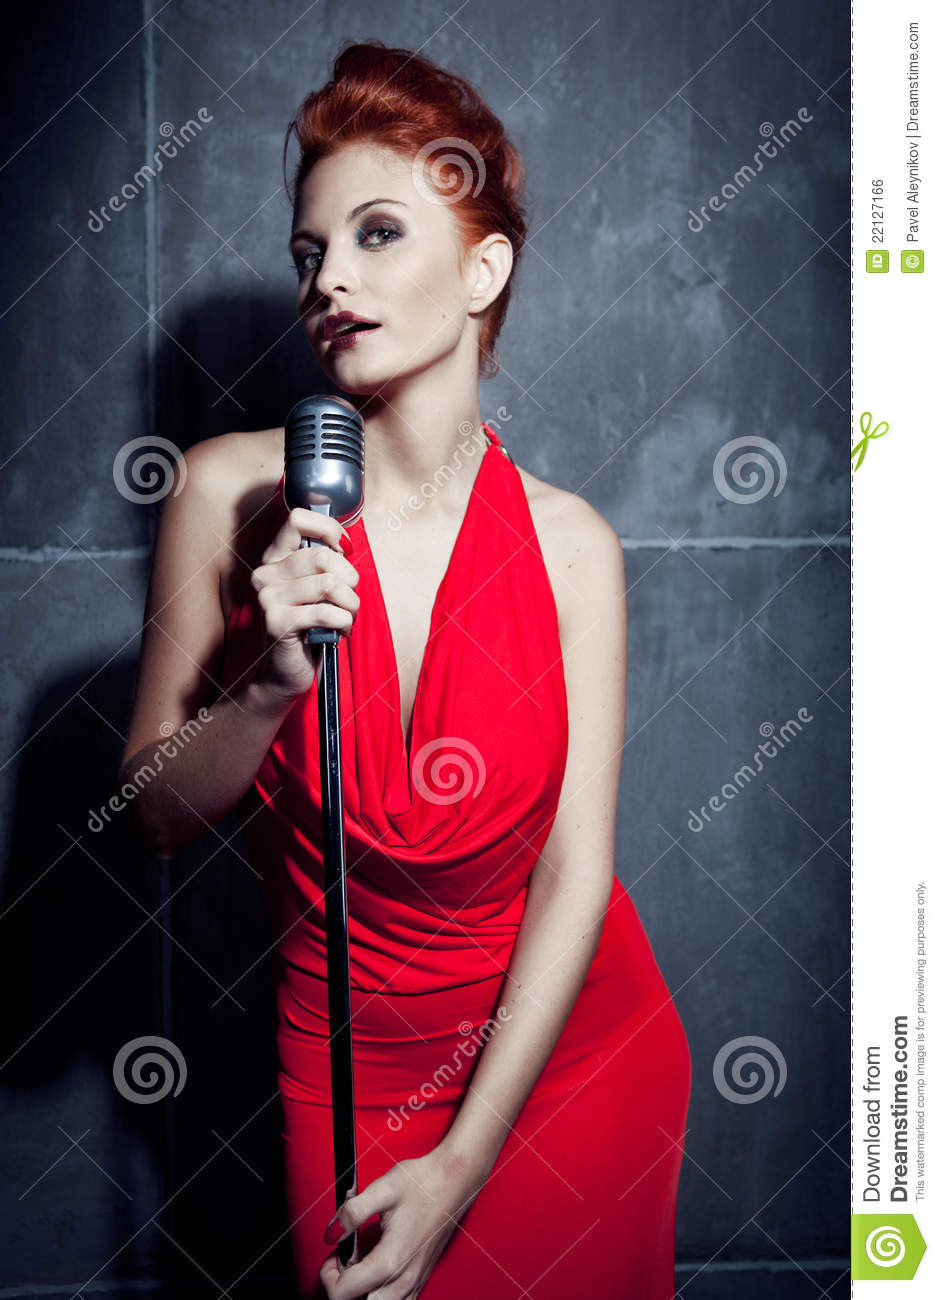 Red hair singer female